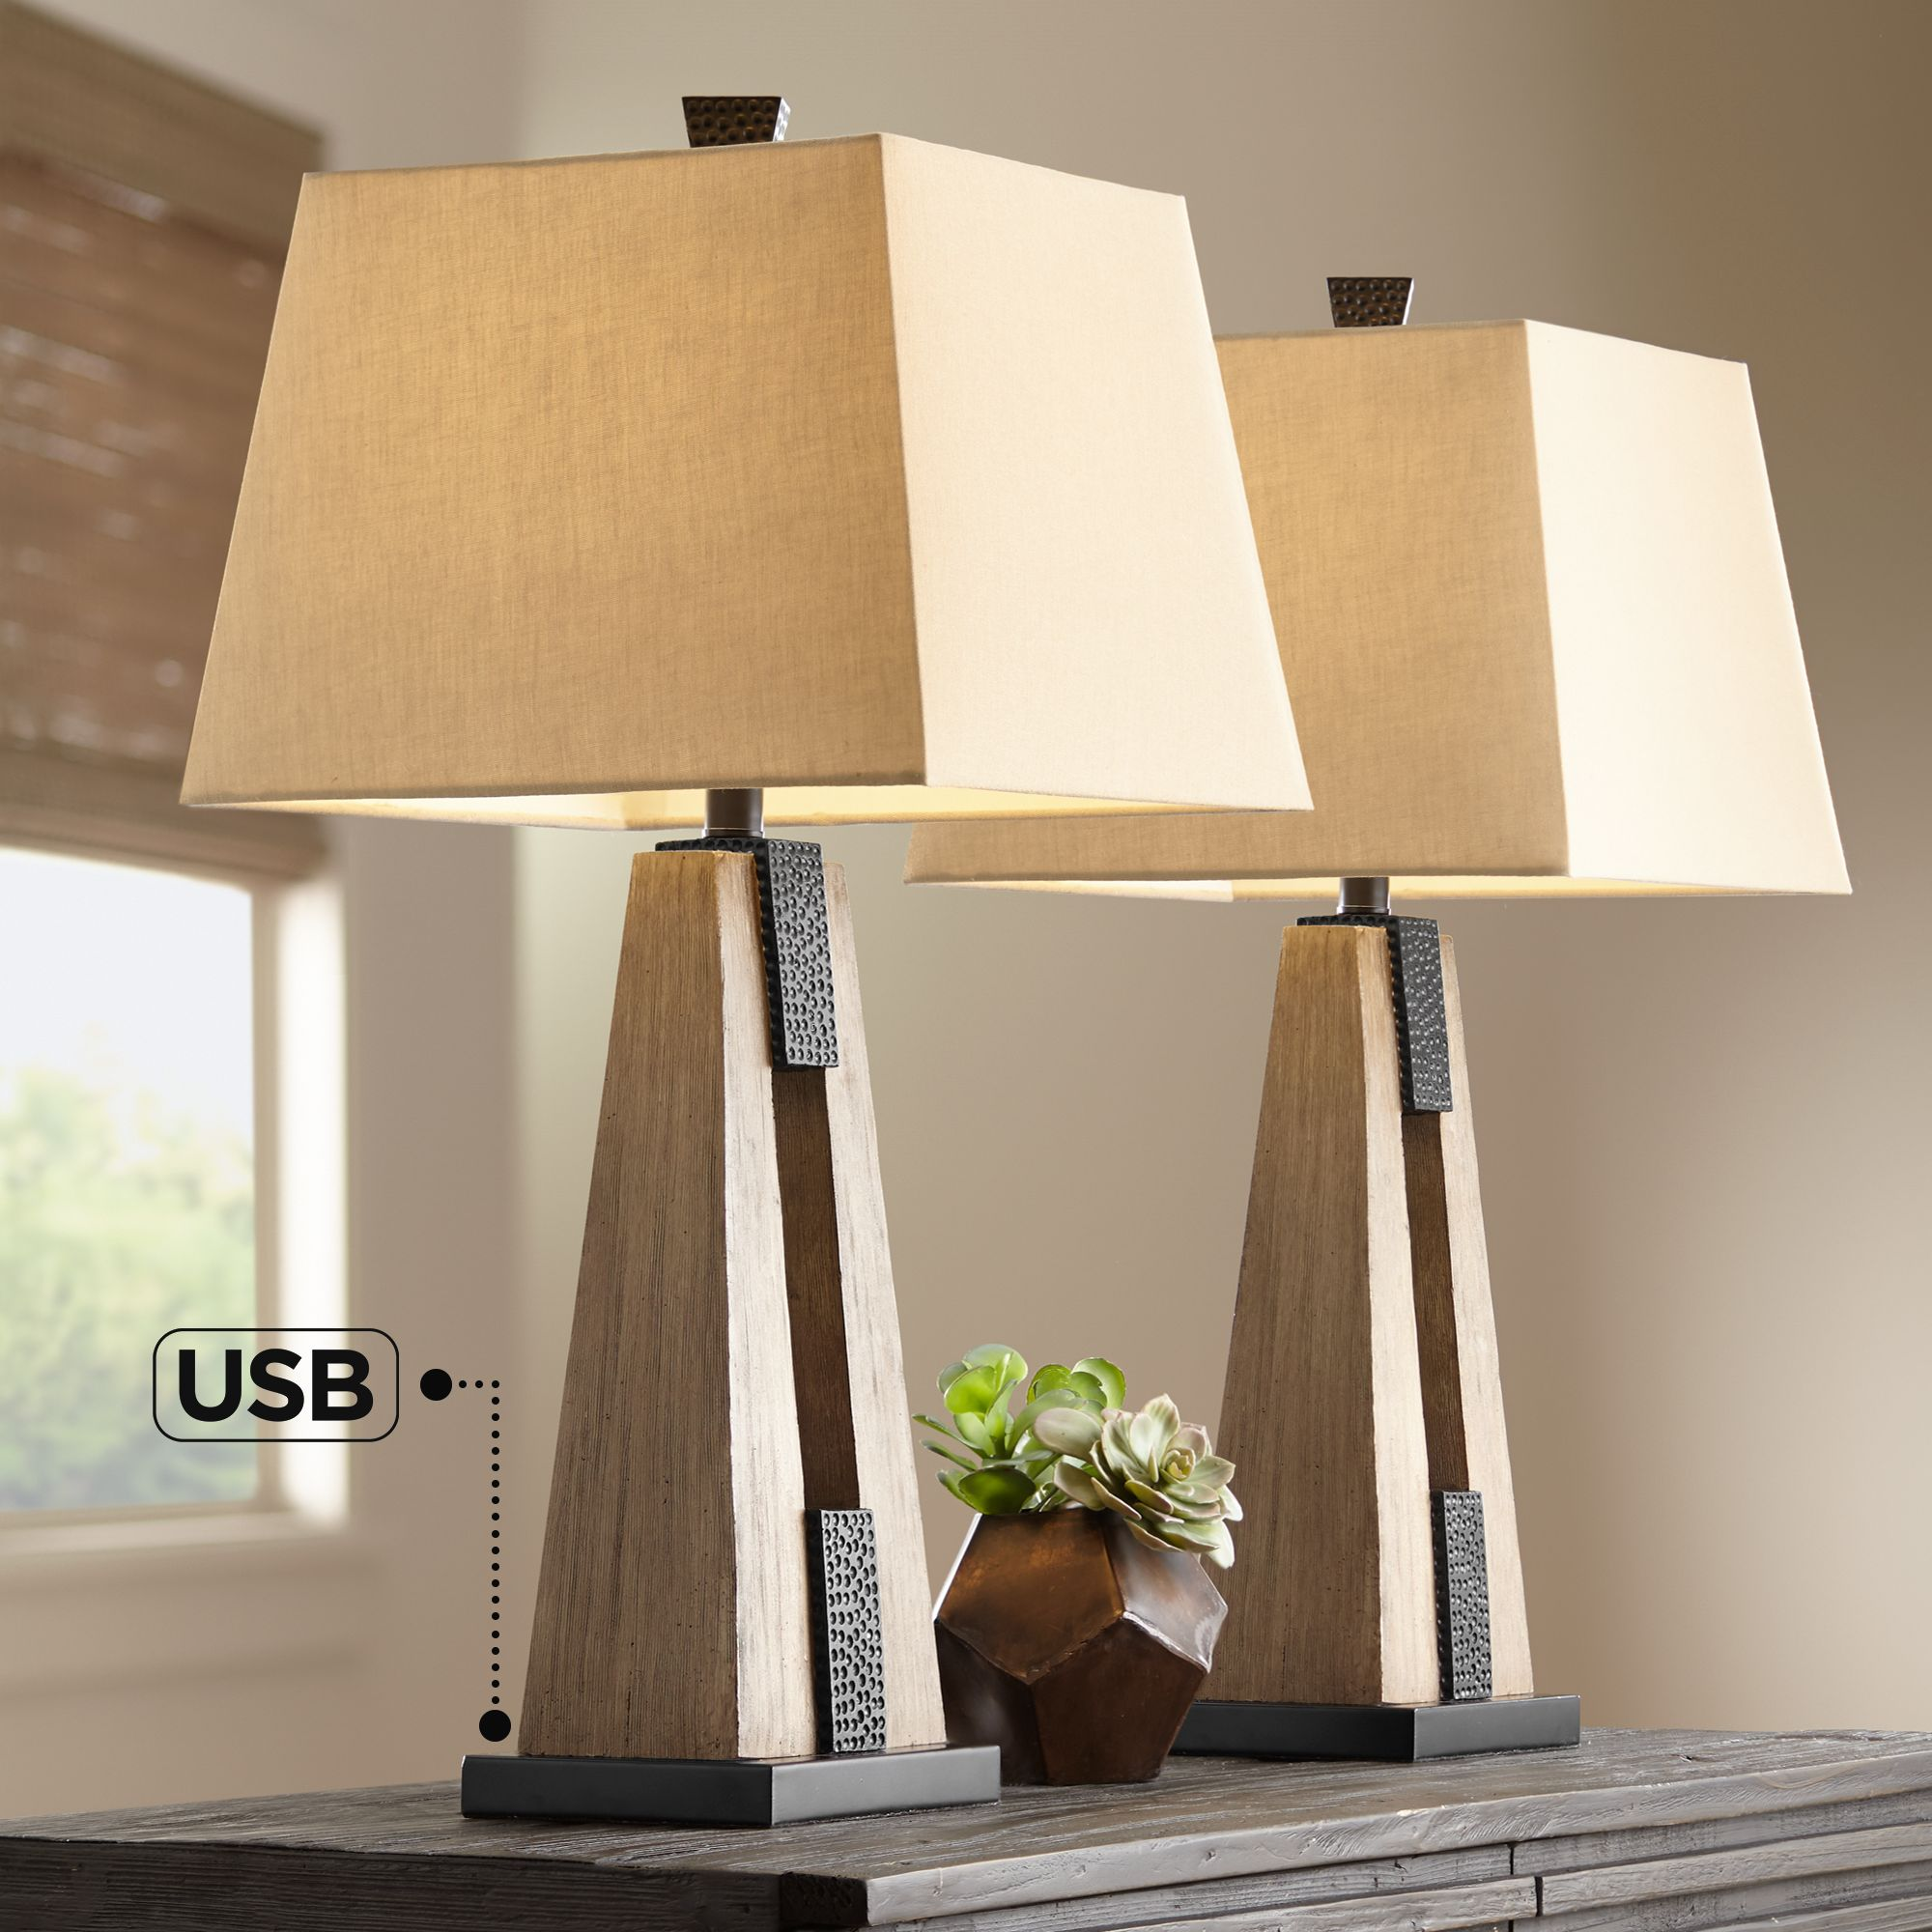 Picture of: Rustic Farmhouse Table Lamps Set Of 2 With Usb Wood Oatmeal Shade Living Room Ebay